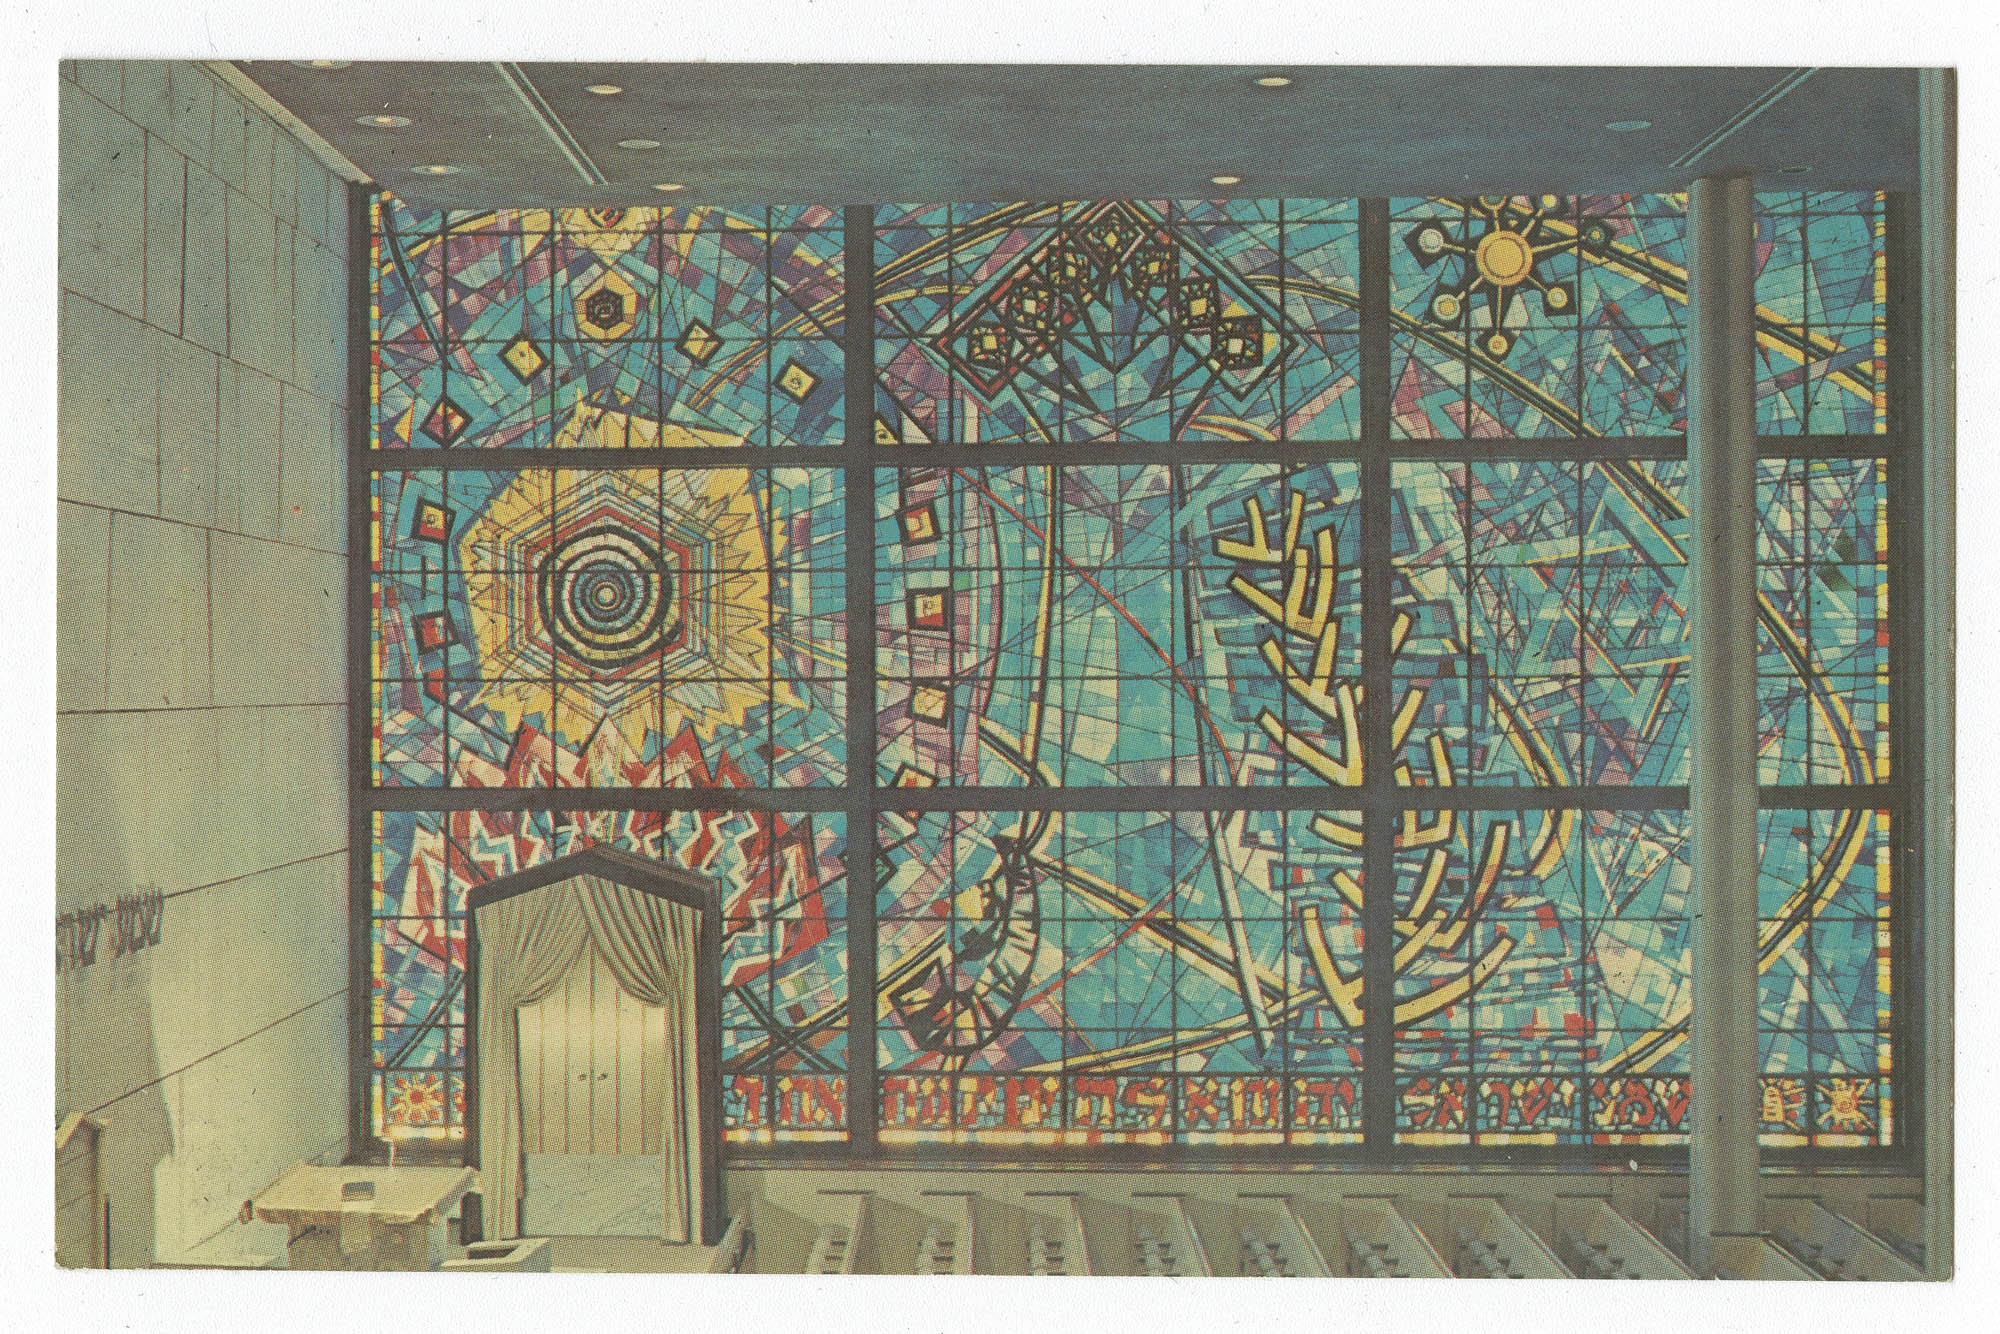 The Chicago Loop Synagogue